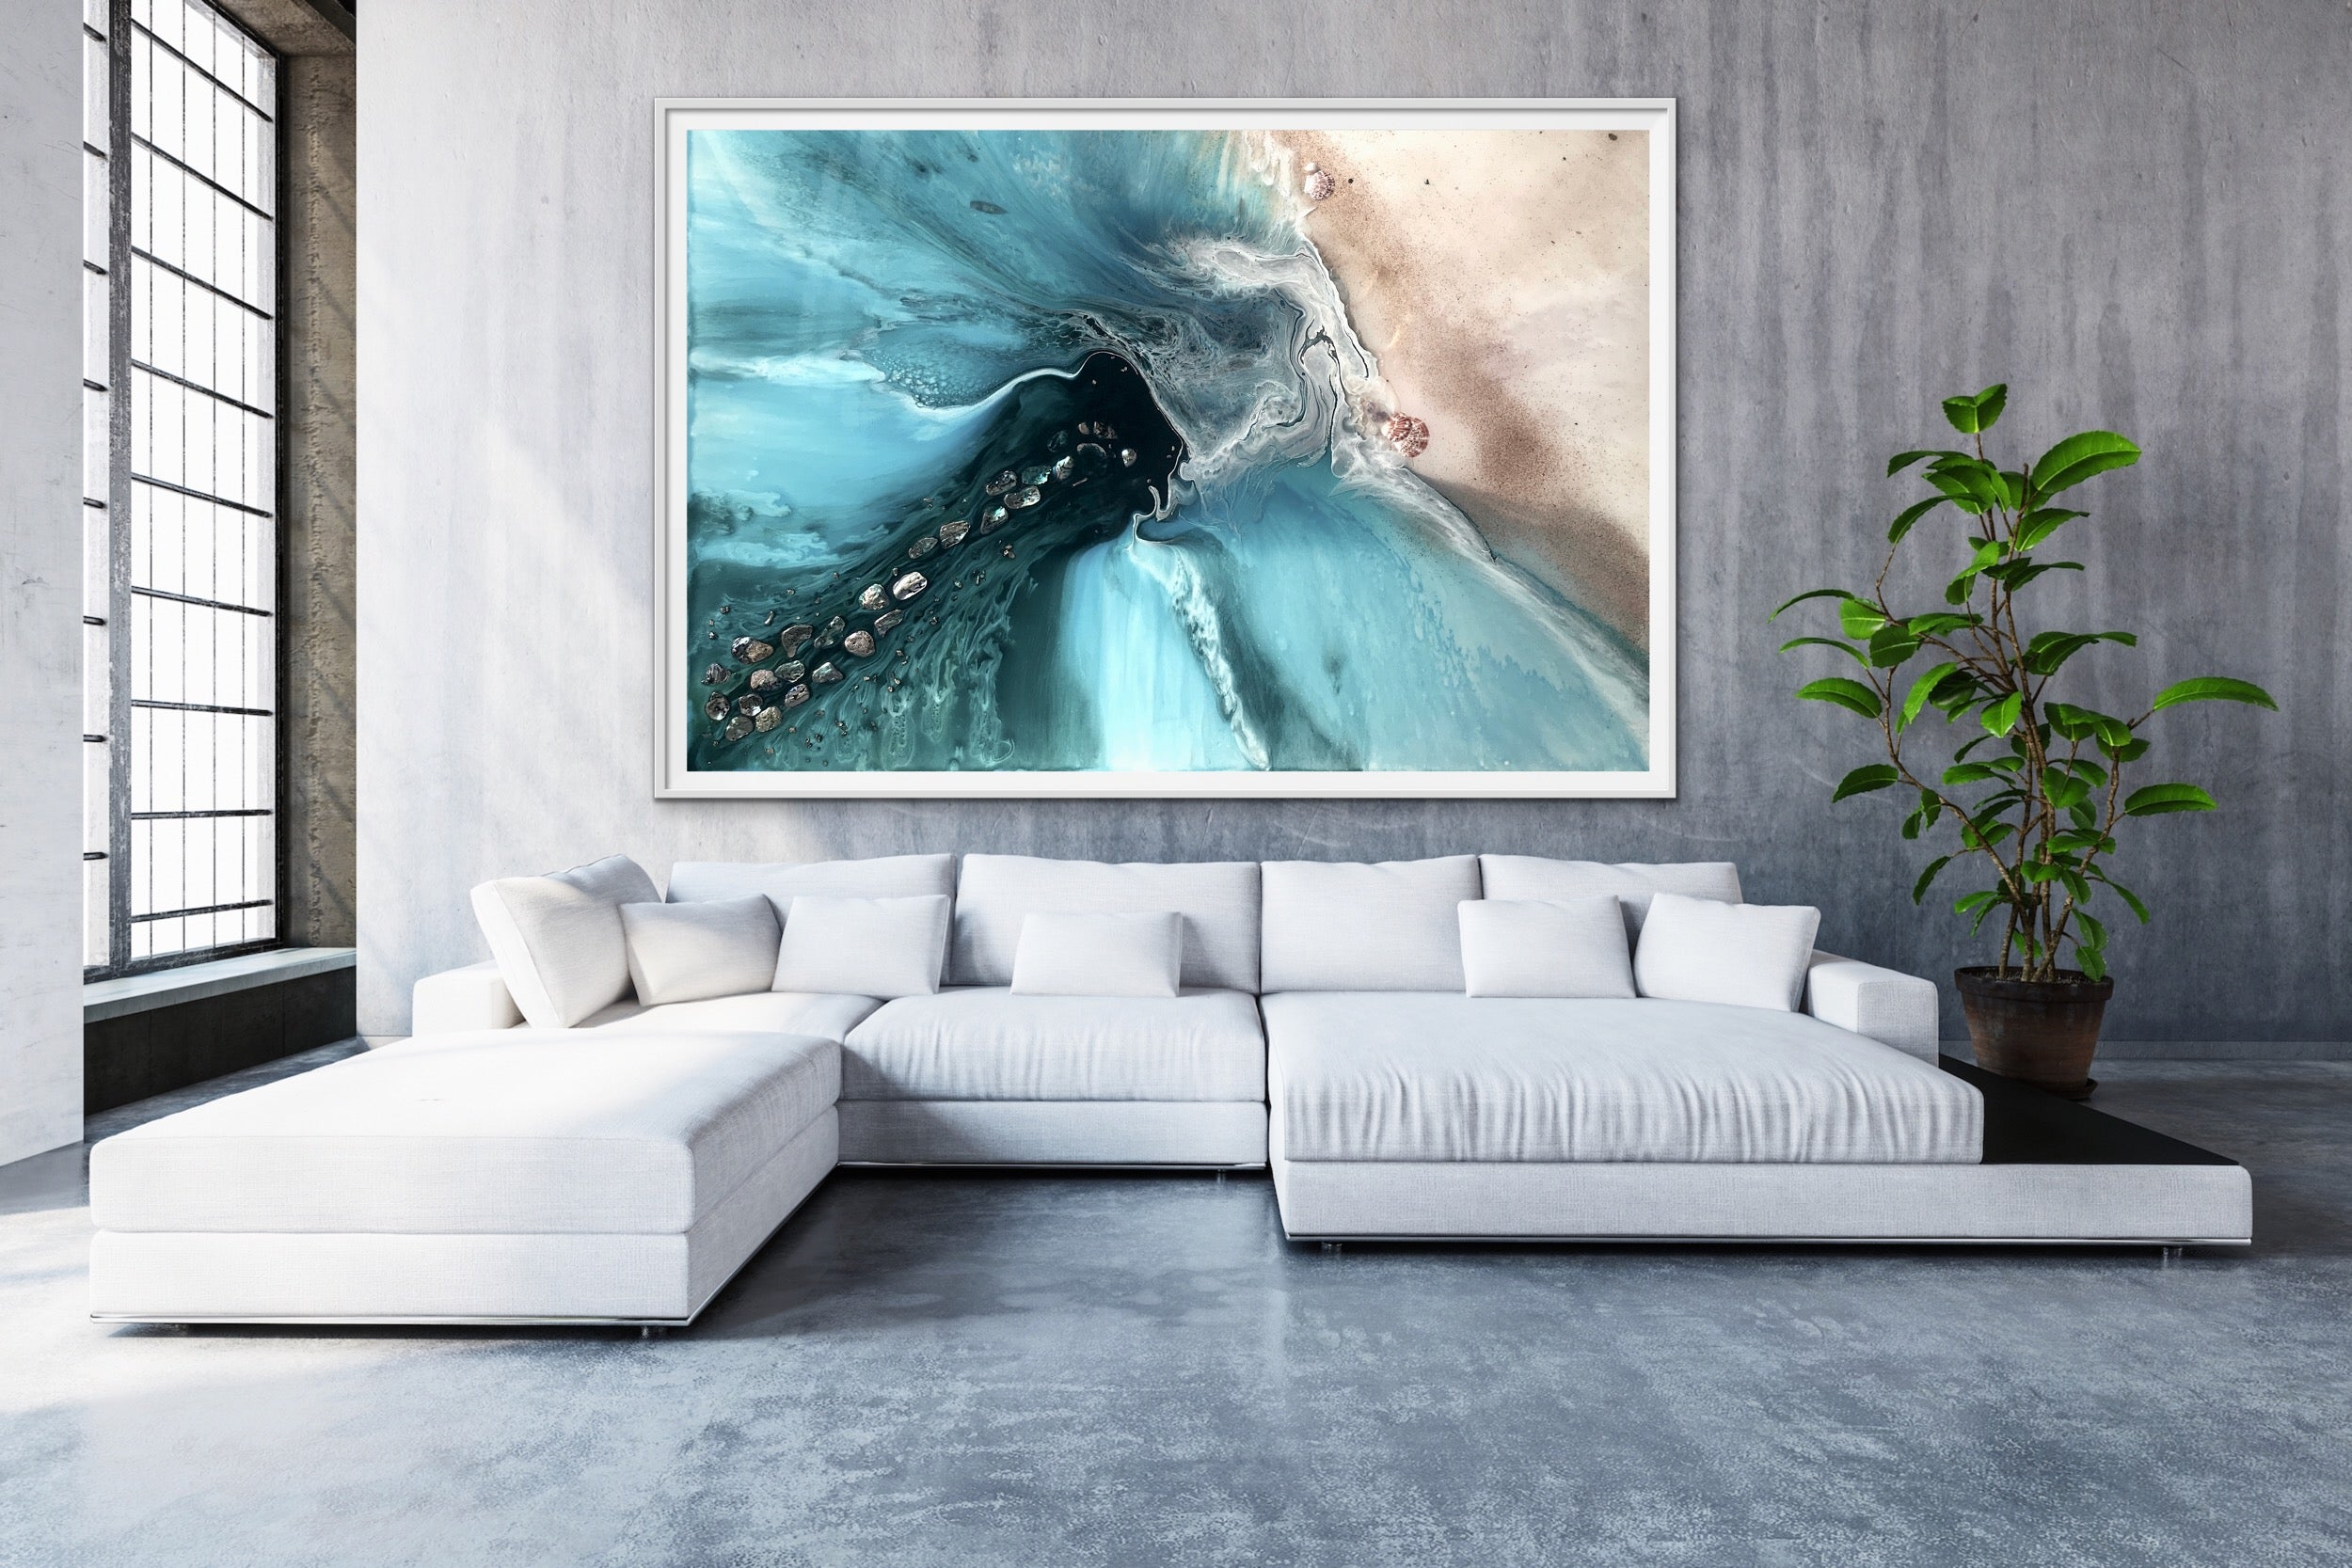 Abstract Sea. Muted Teal. Rise Above 4 Neutral. Art print. Antuanelle 5 Ocean Seascape. Limited Edition Print